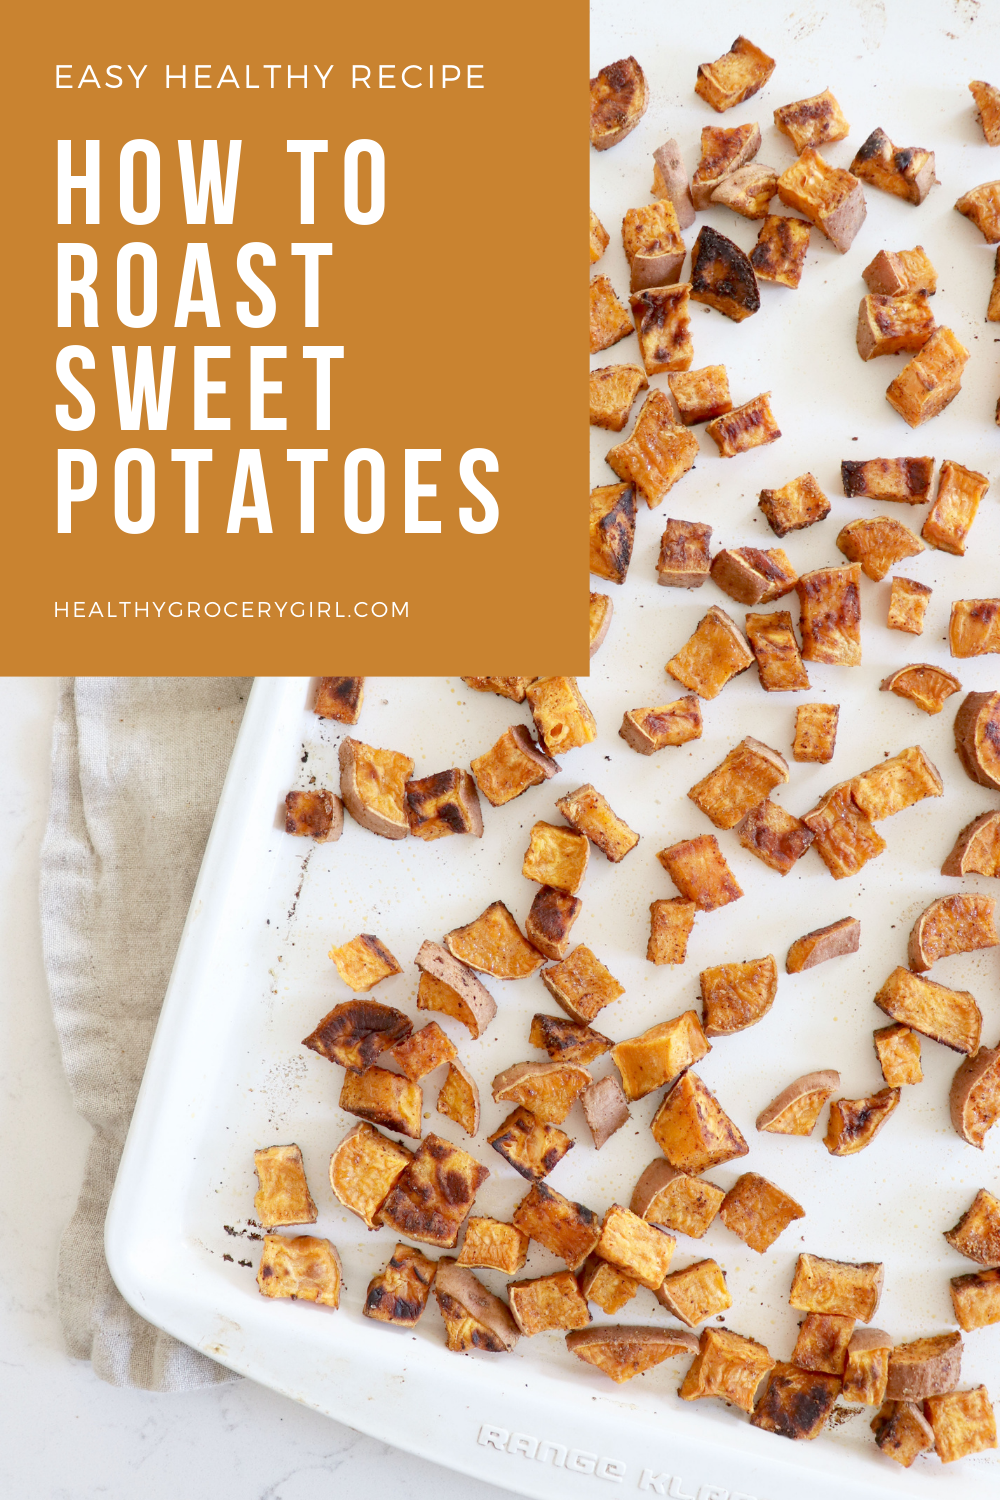 Pinterest Food Graphic for how to roast sweet potatoes